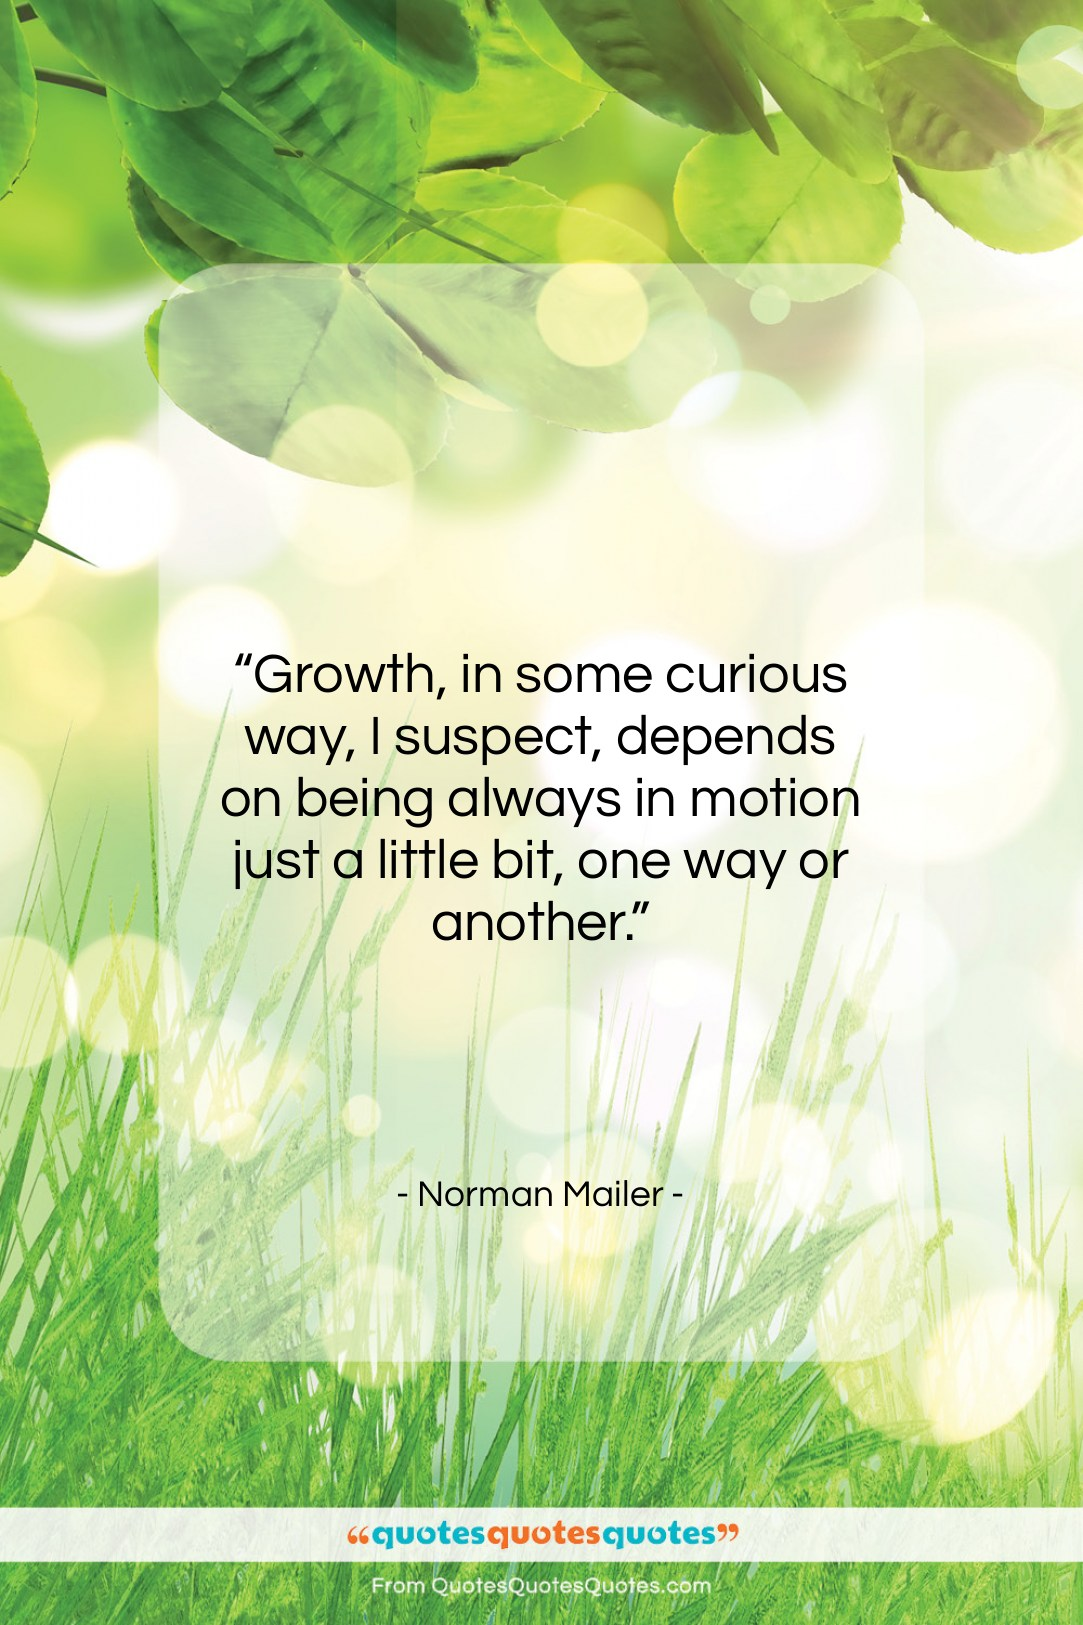 """Norman Mailer quote: """"Growth, in some curious way, I suspect,…""""- at QuotesQuotesQuotes.com"""